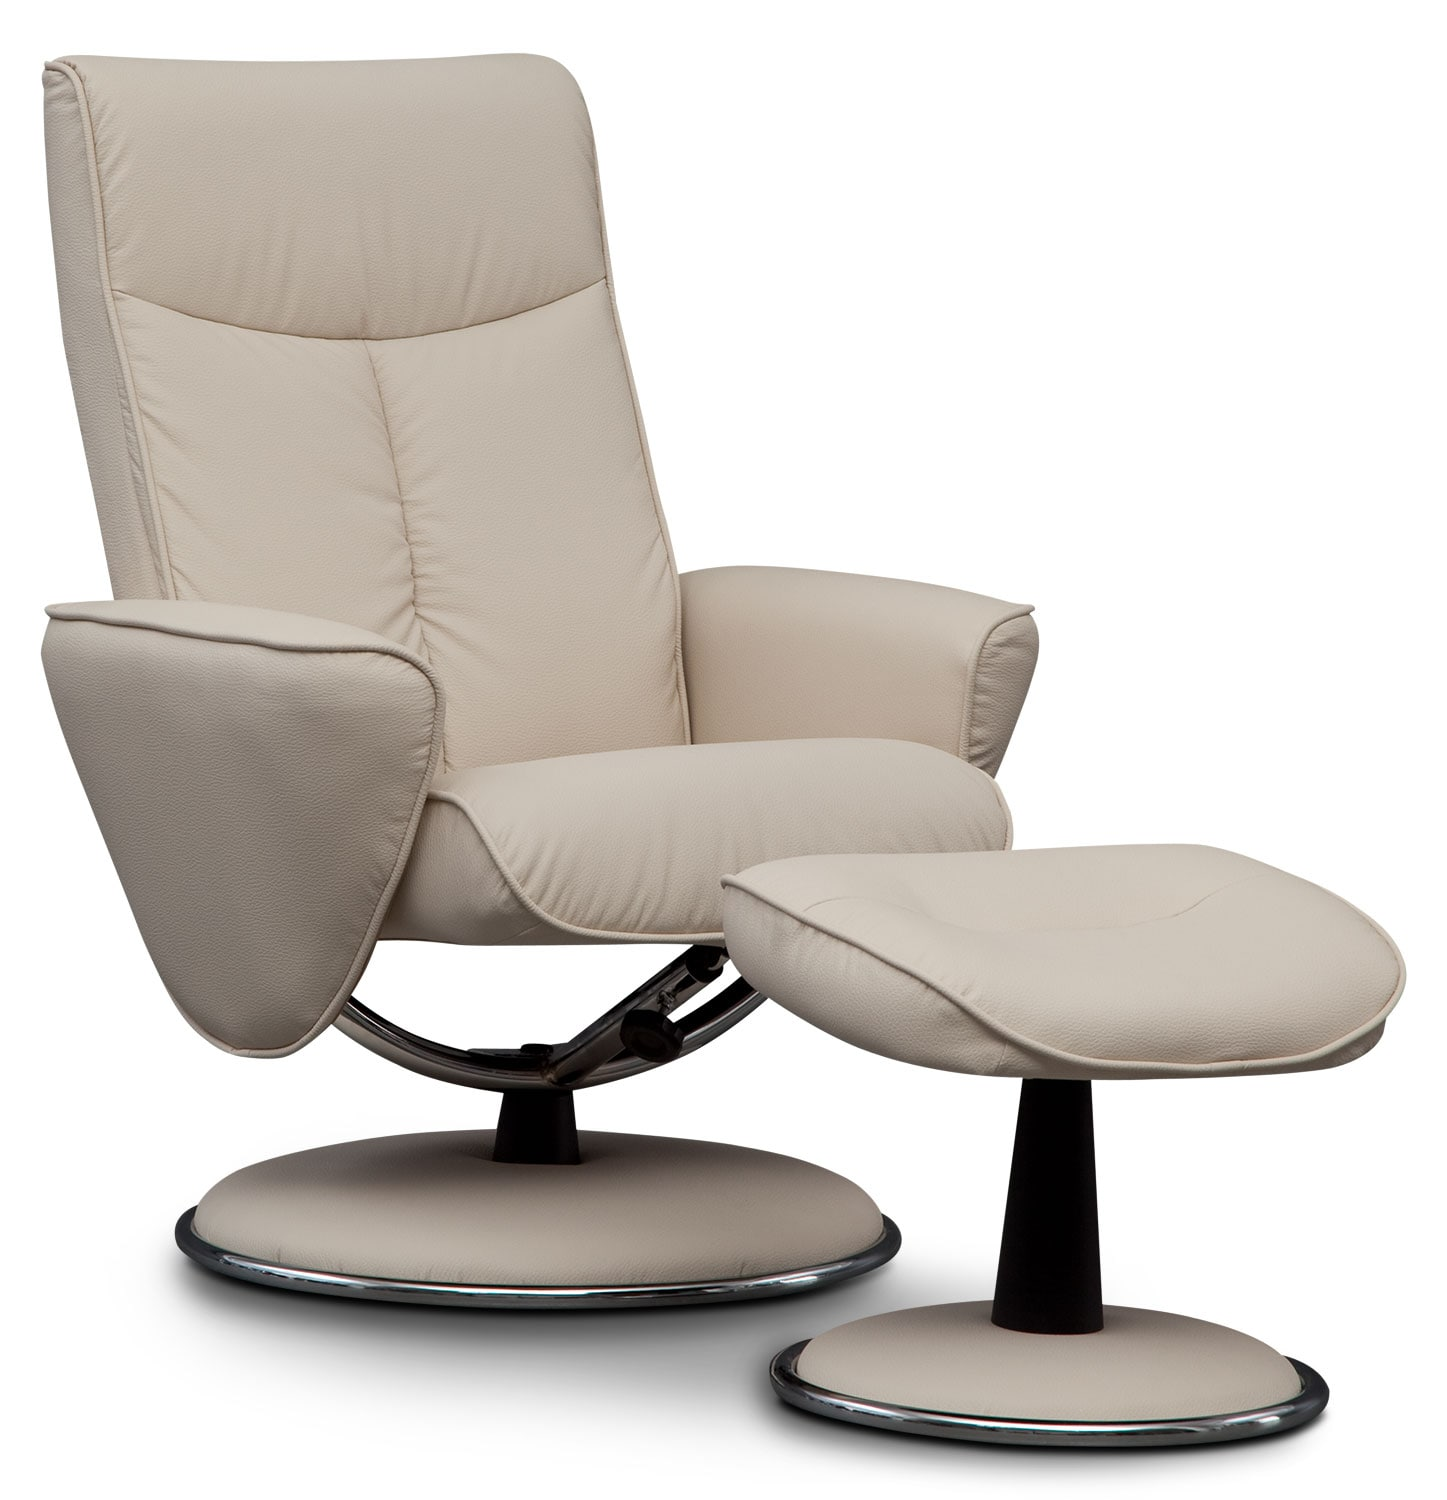 Tracer Reclining Chair and Ottoman - Snow